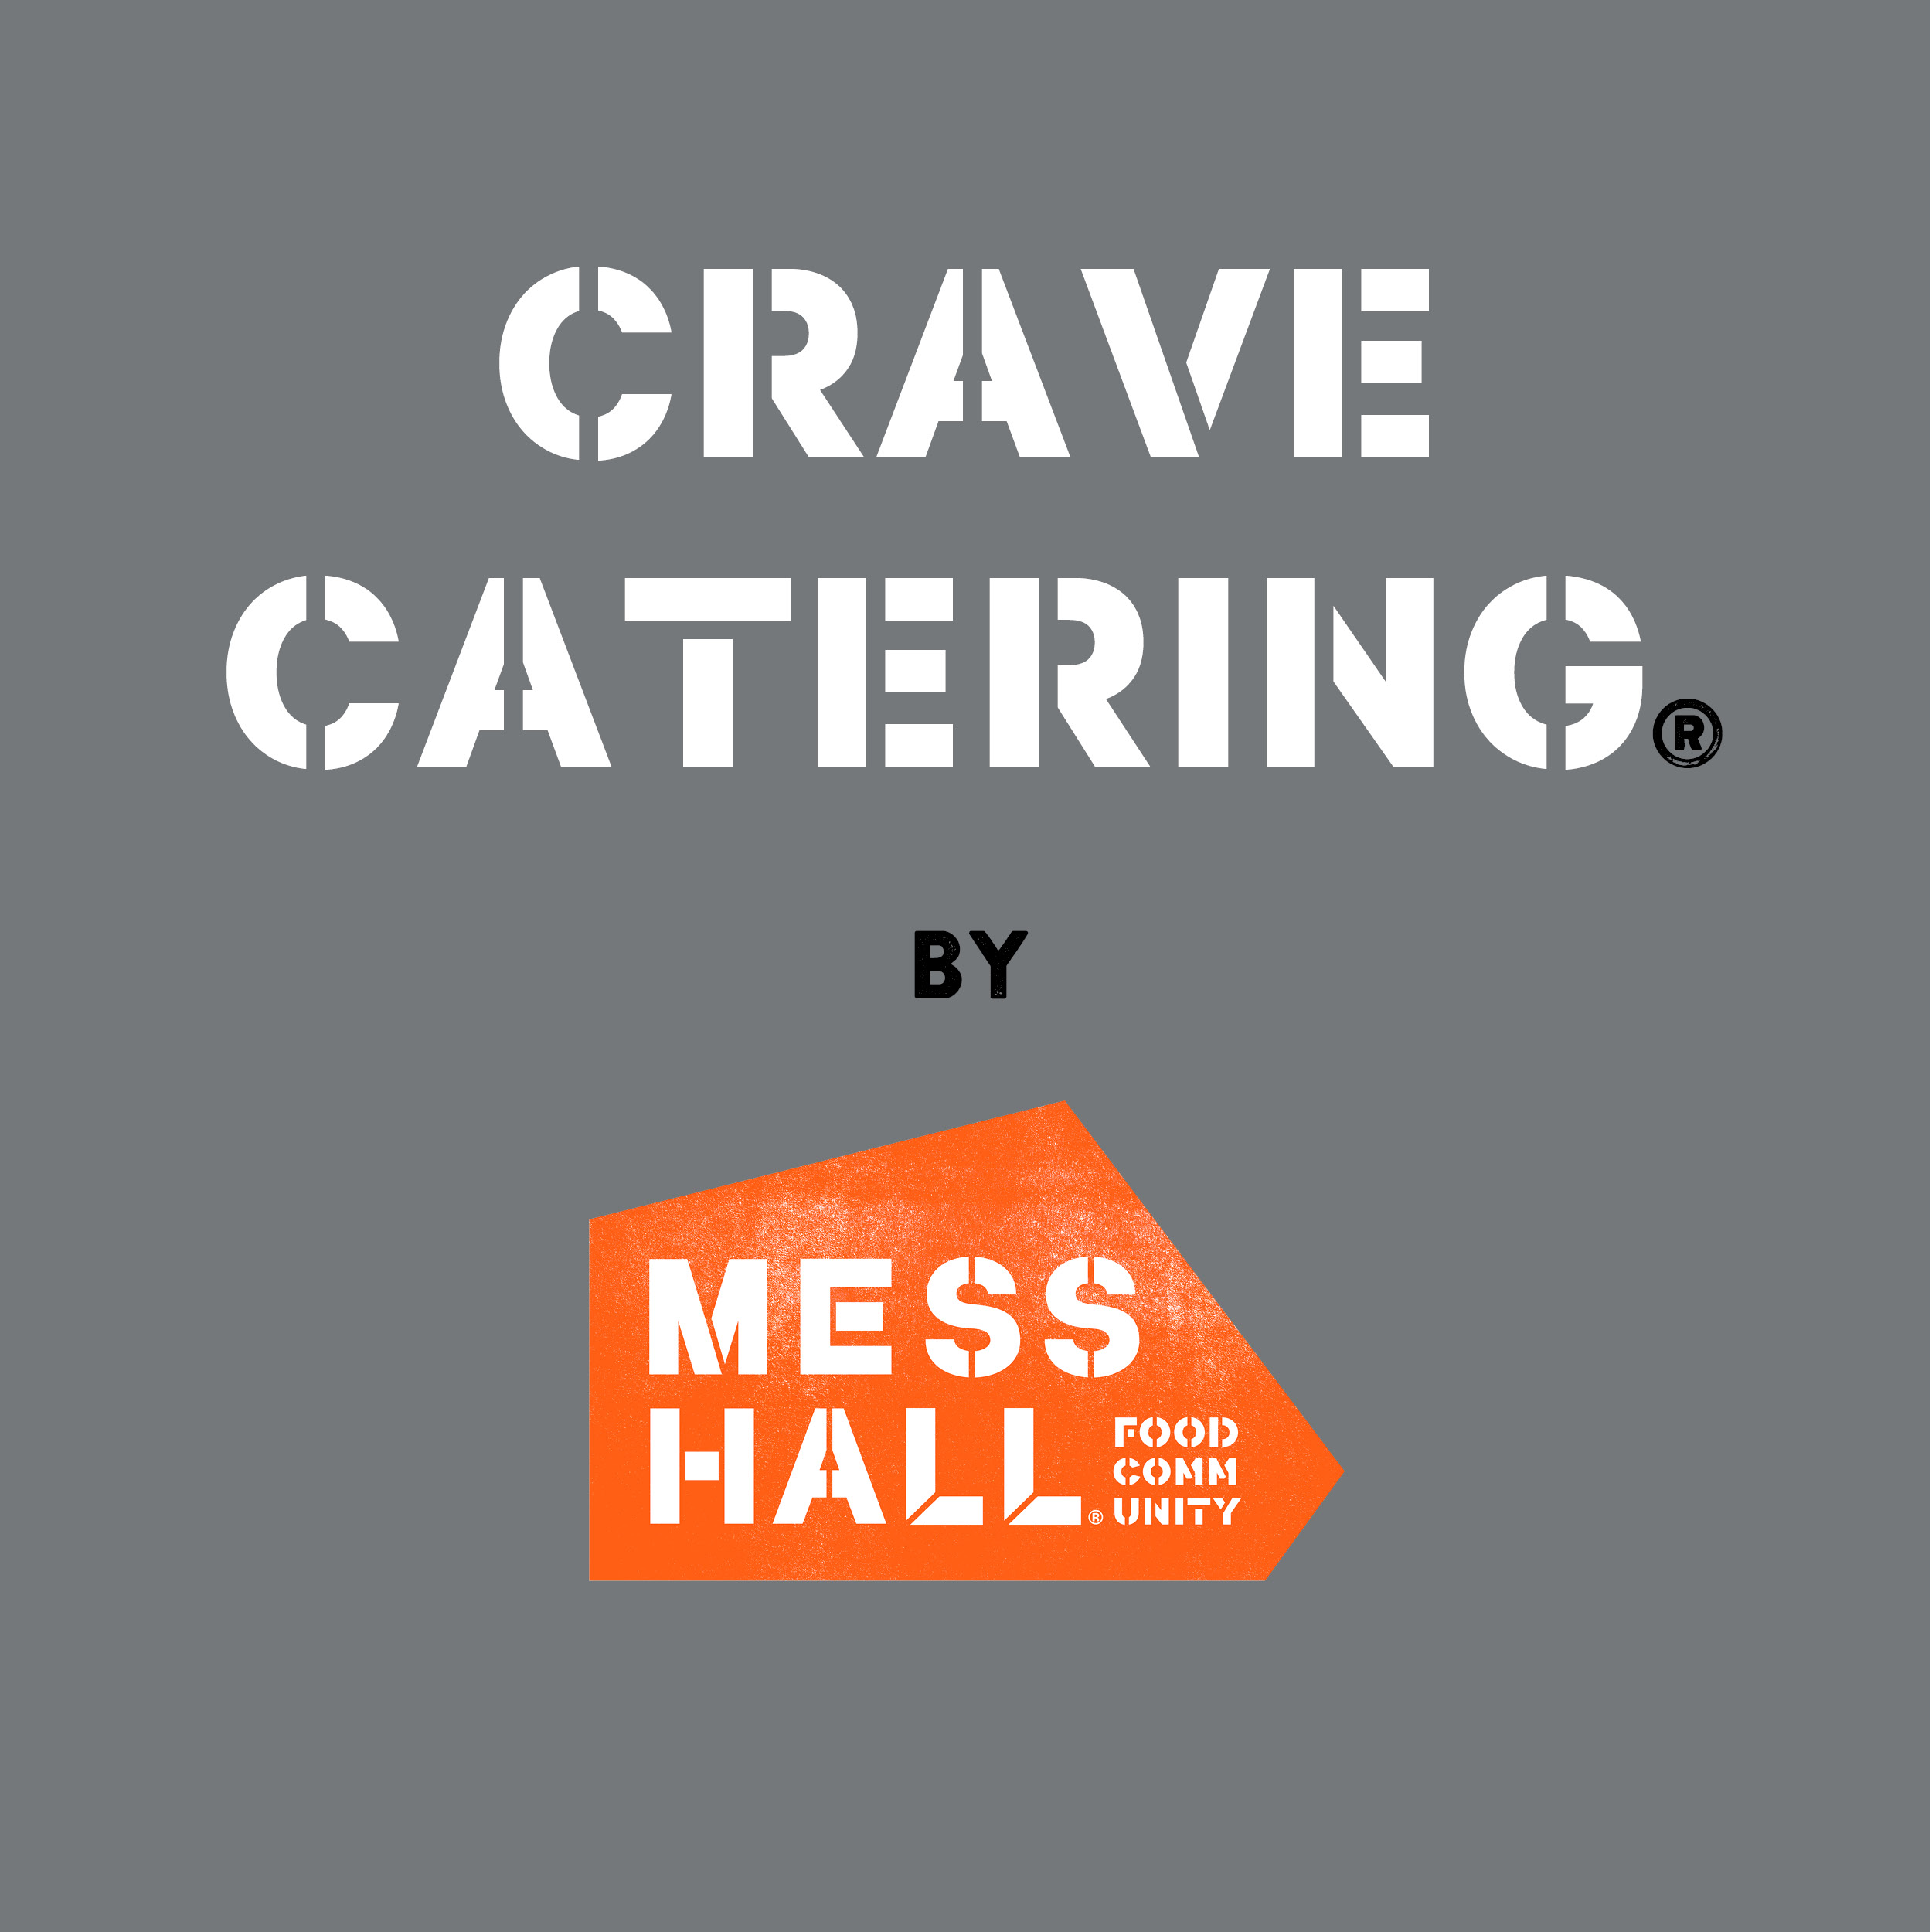 by Crave Catering